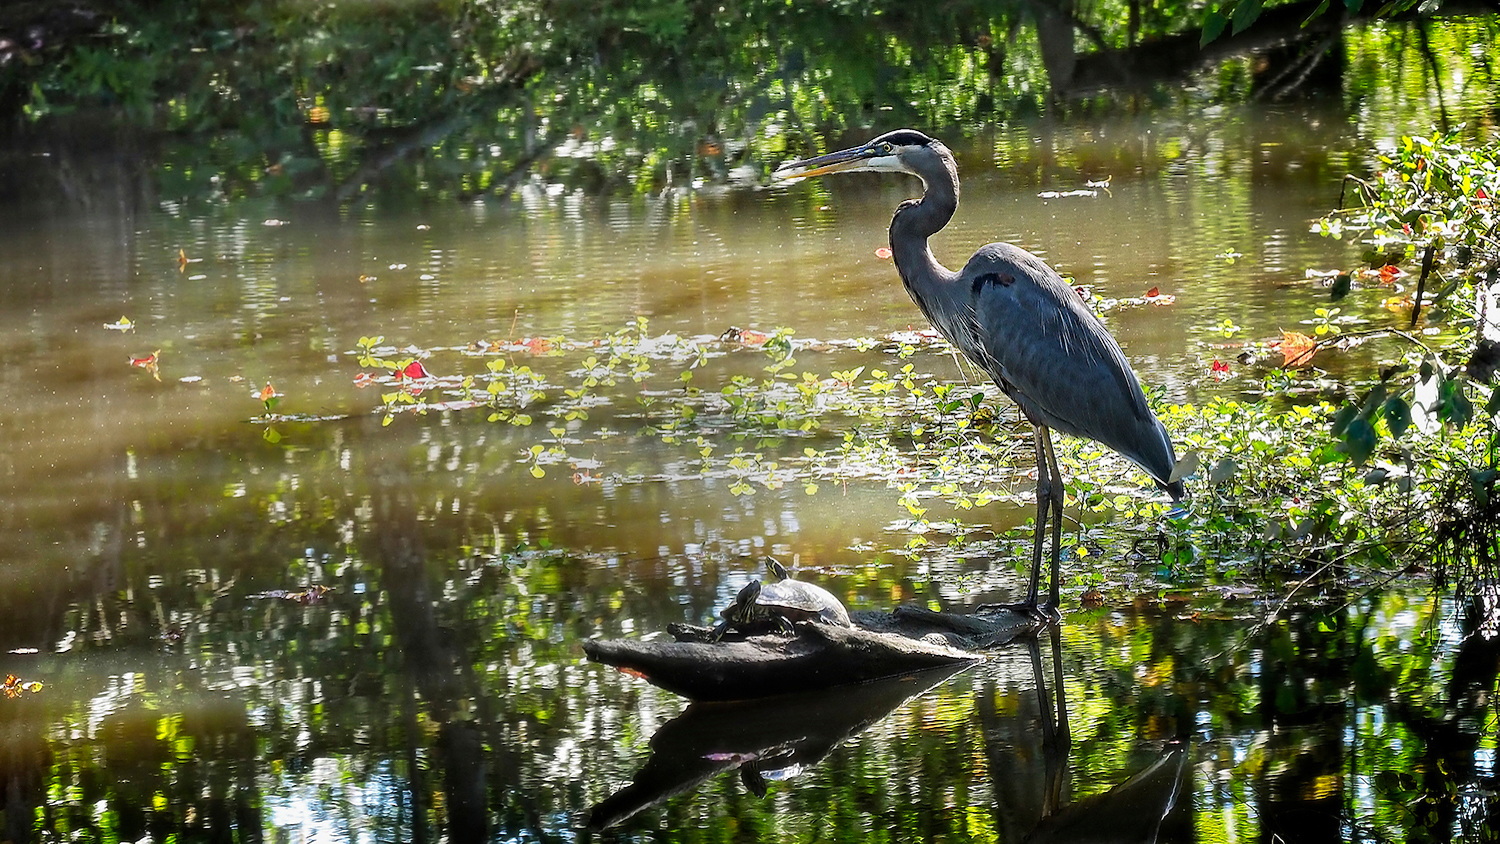 A great blue heron and turtles along a body of water - Ecology Wildlife Foundation Establishes Three Funds to Support Conservation Research - Forestry and Environmental Resources Department at NC State